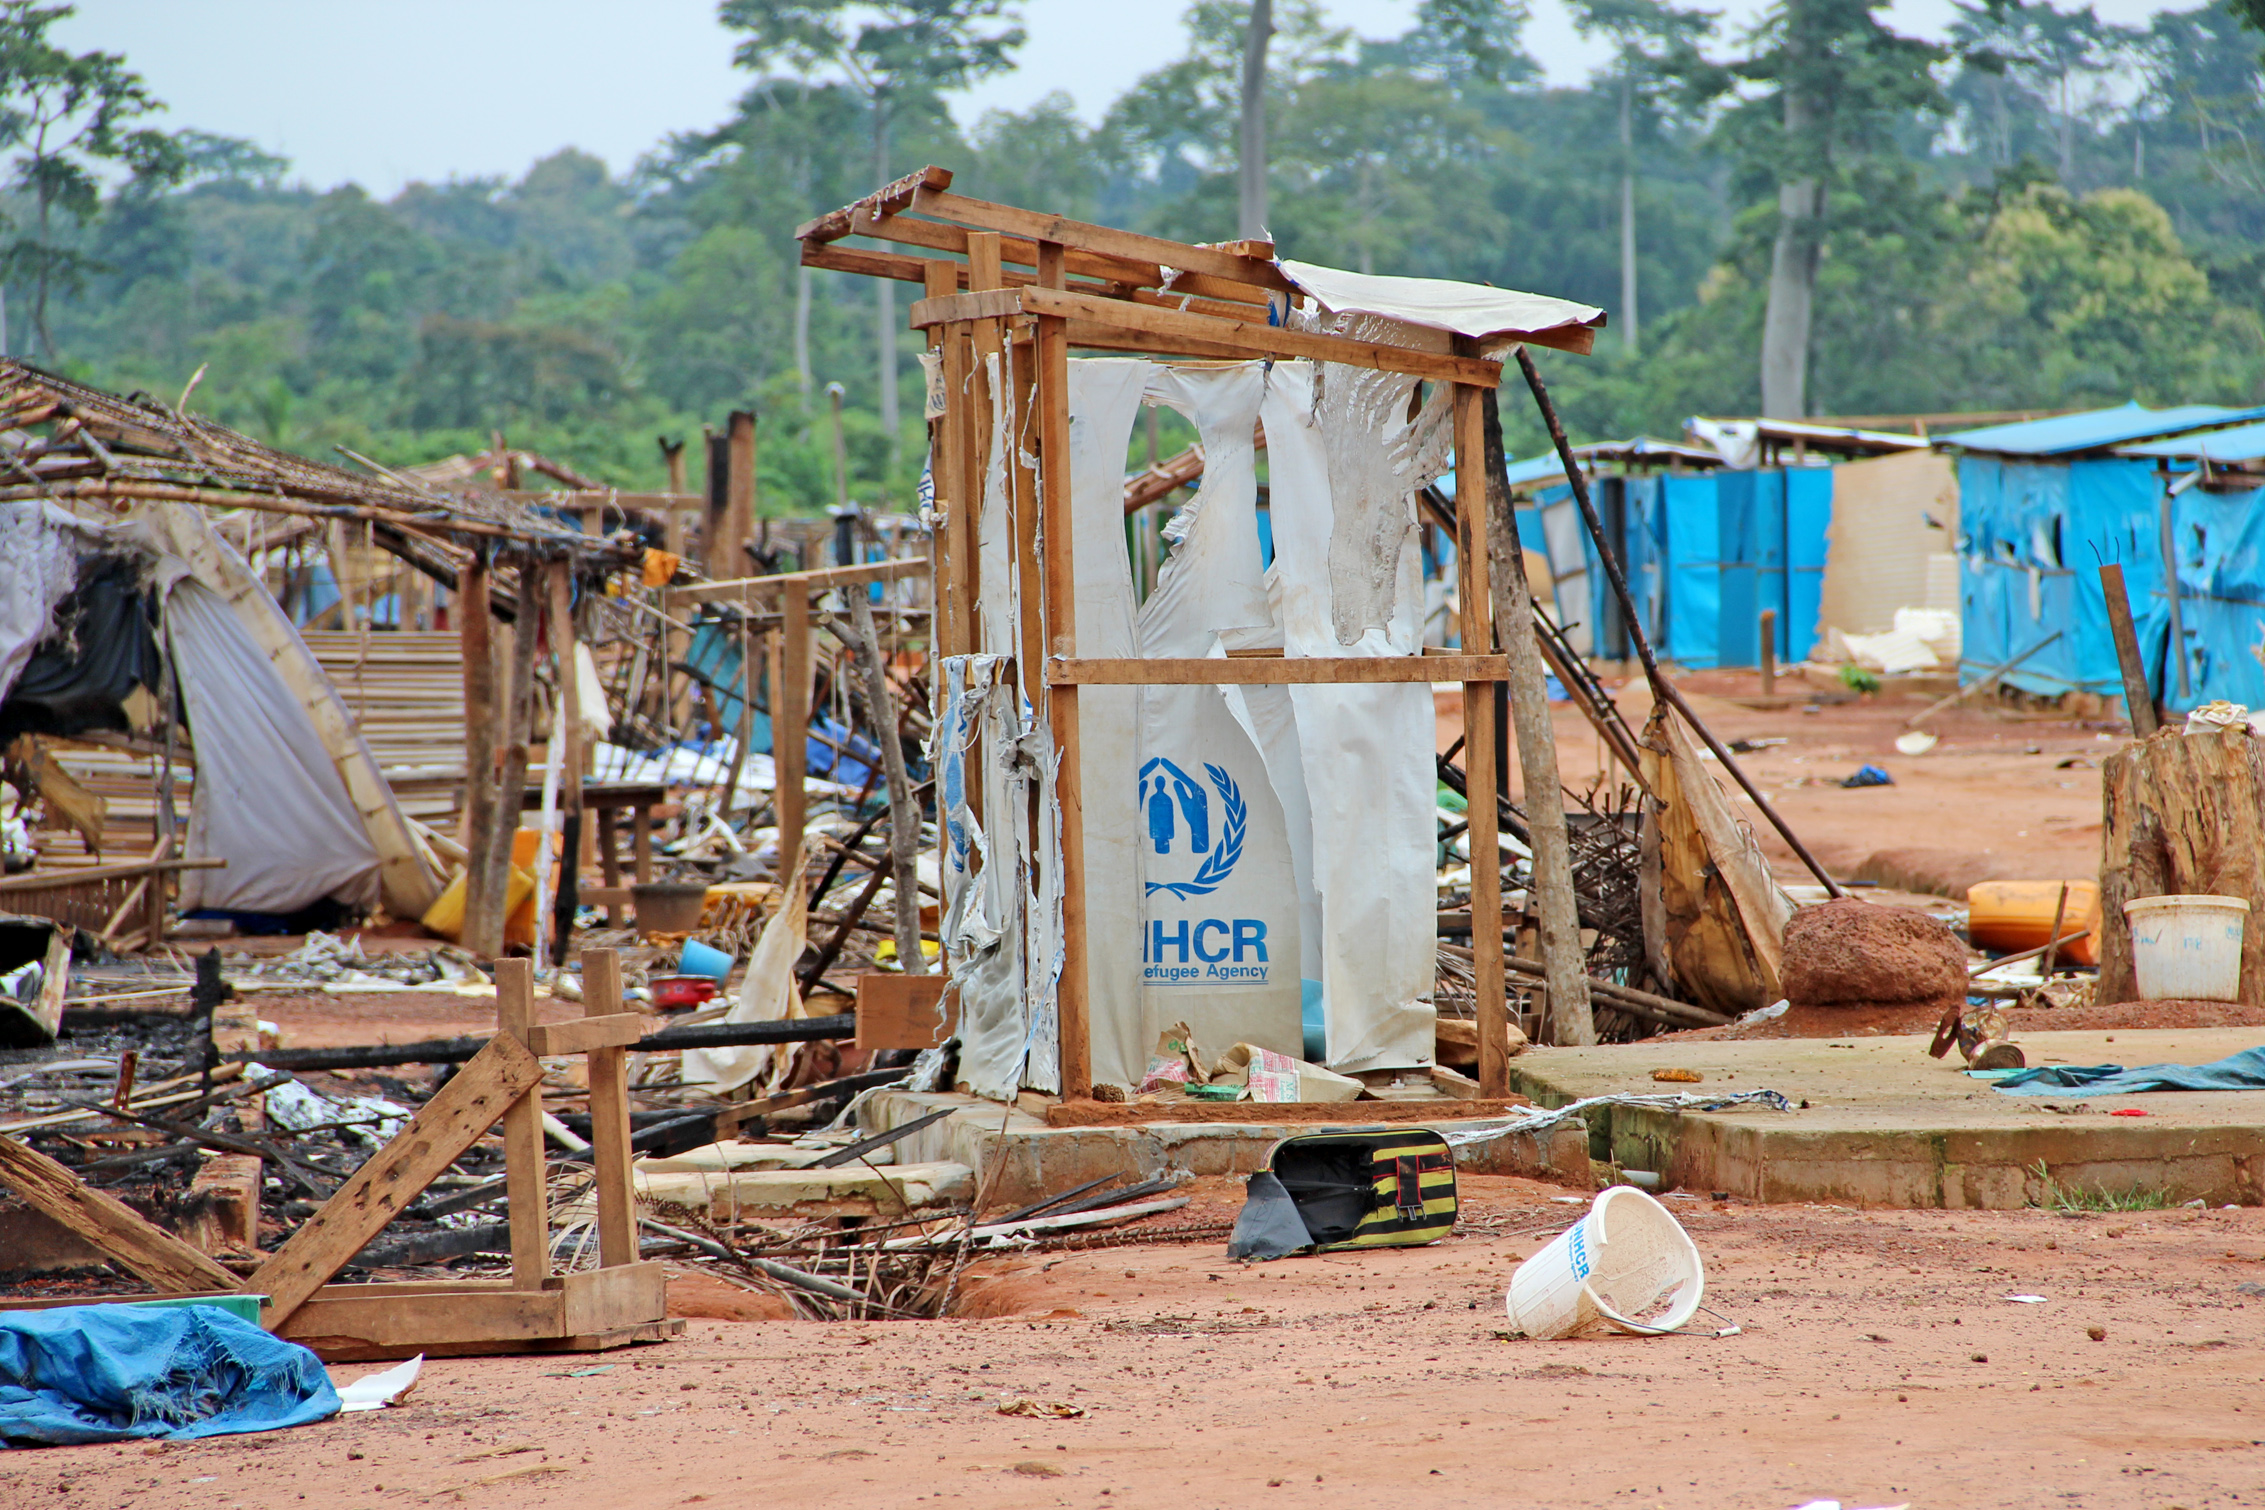 Côte d'Ivoire's western region has been plagued by violence triggered by political and ethnic rivalry as well as land disputes. The Nahibly camp was the last IDP refuge in the country after the 2010-11 election unrest that claimed some 3,000 lives